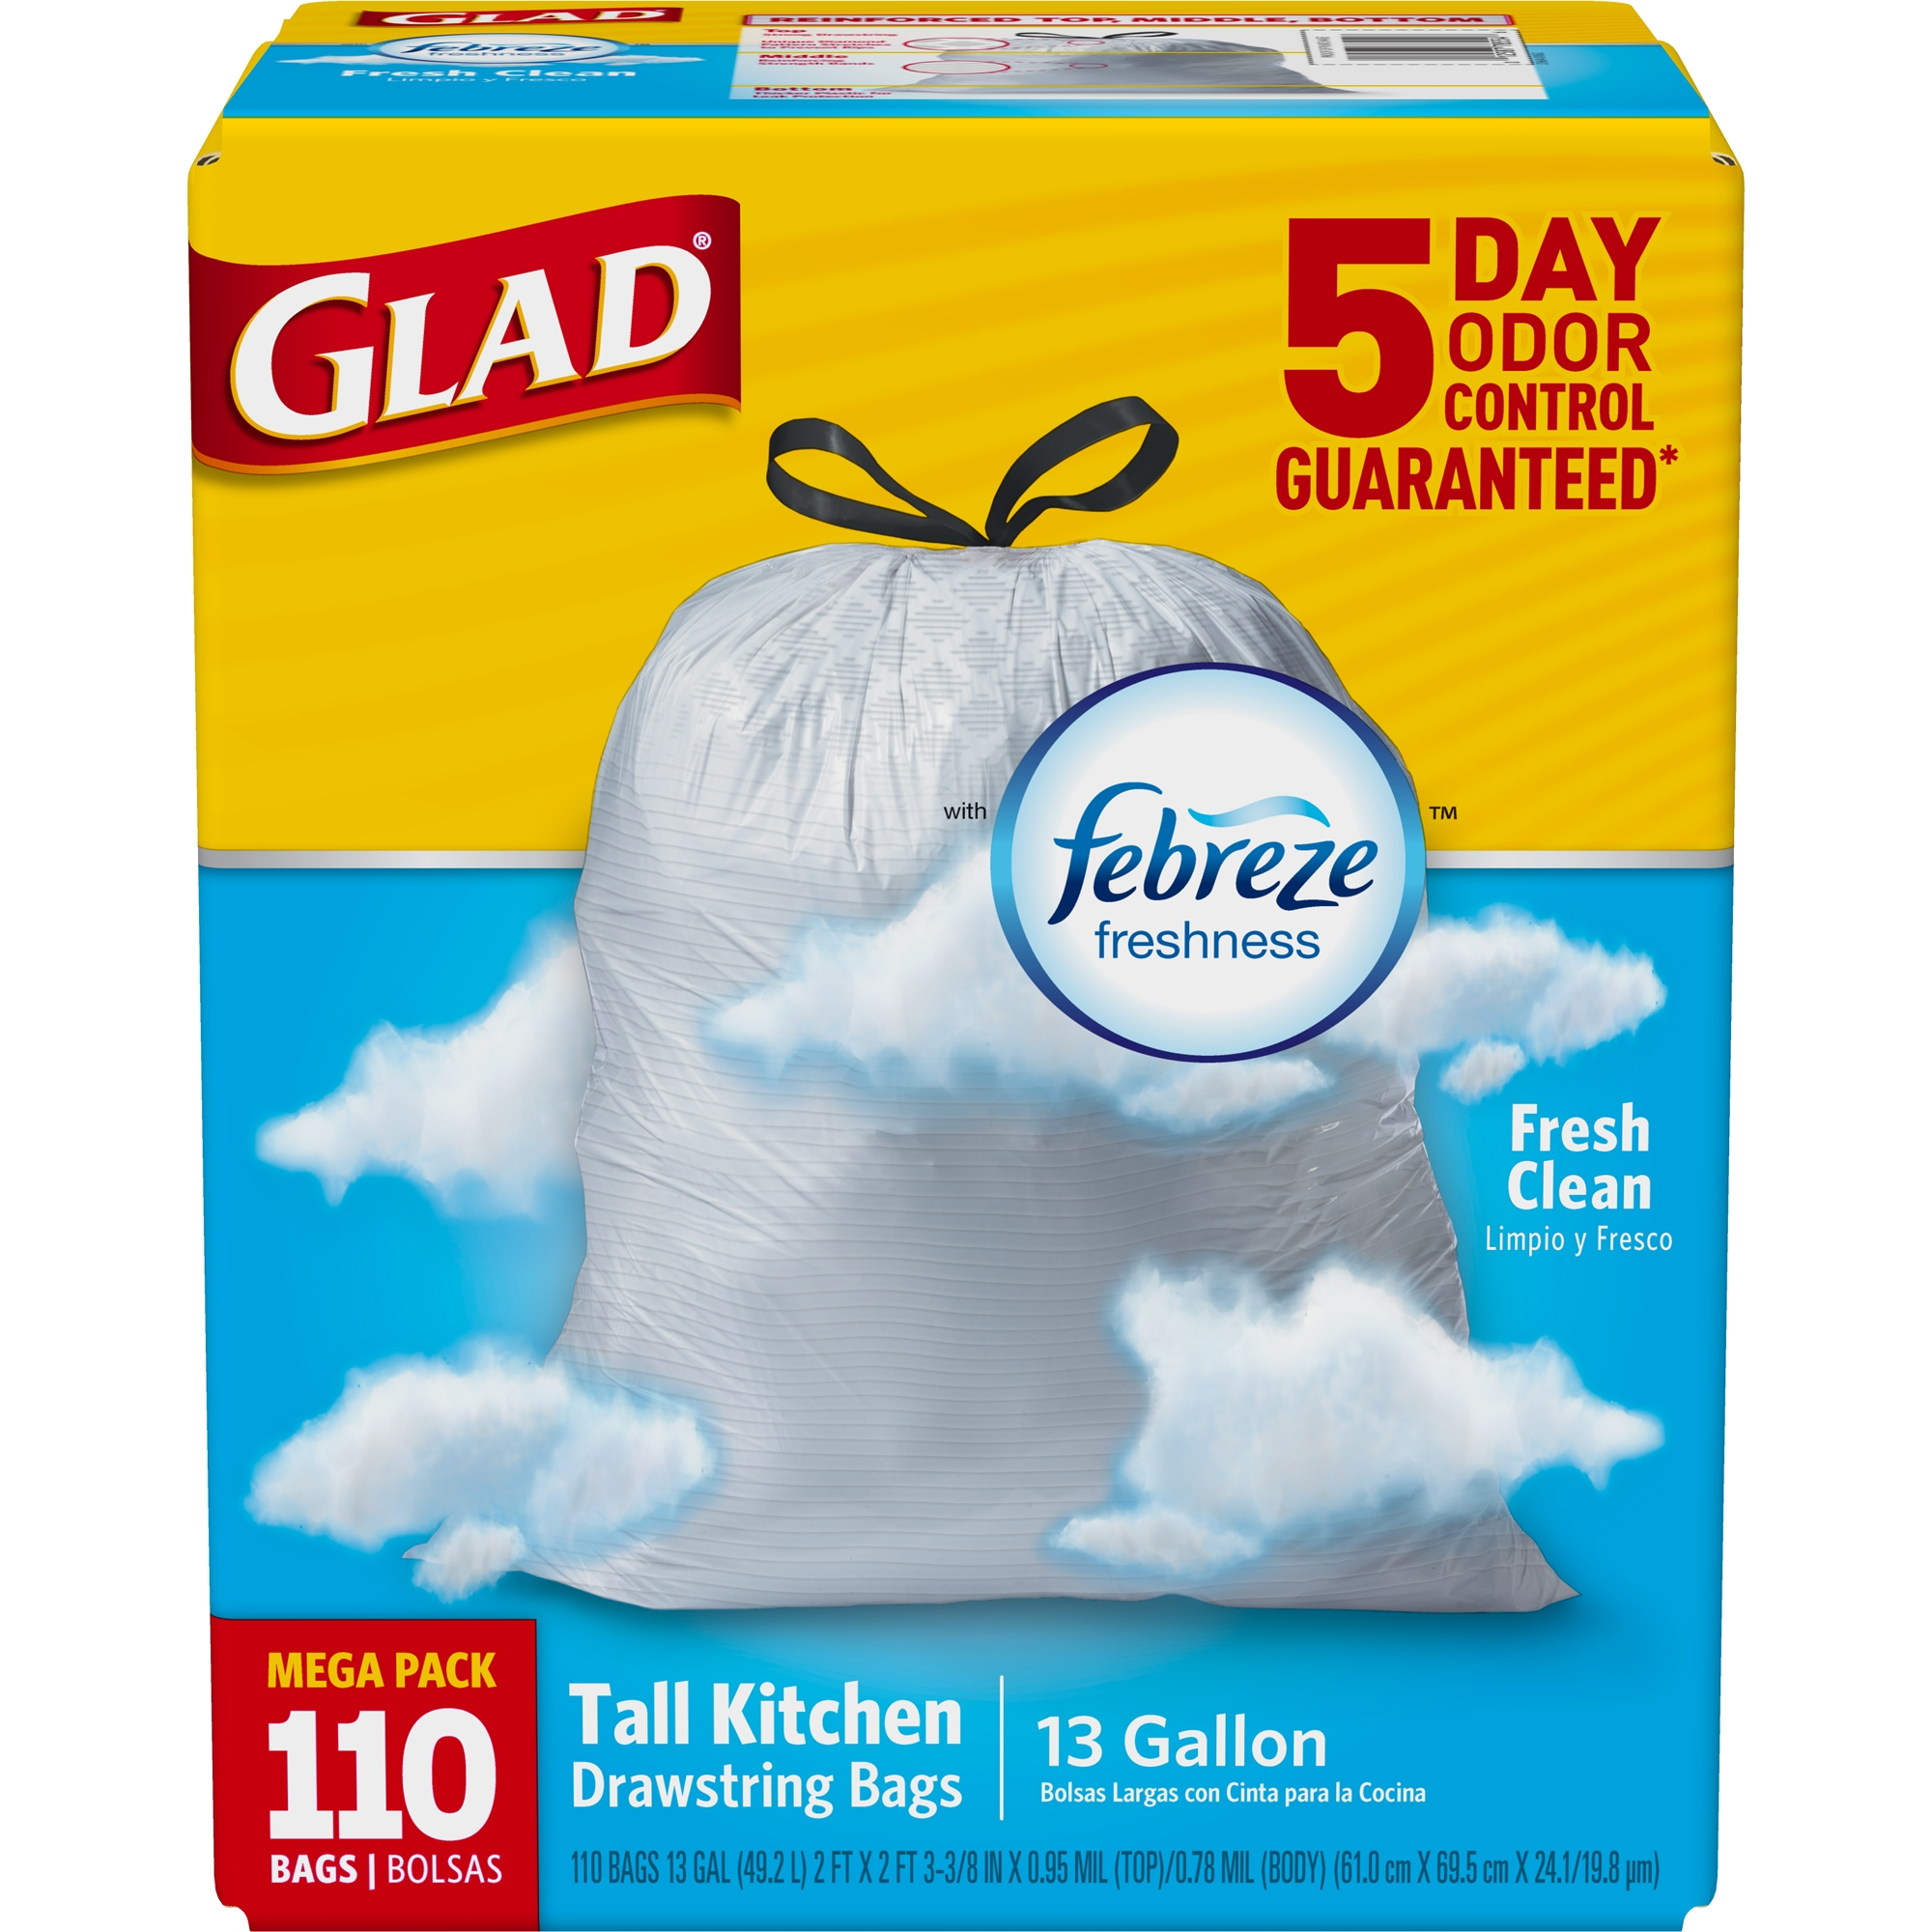 Glad Febreze Fresh Clean OdorShield Tall Kitchen Drawstring Trash Bags, 13 Gallon, 110 Ct